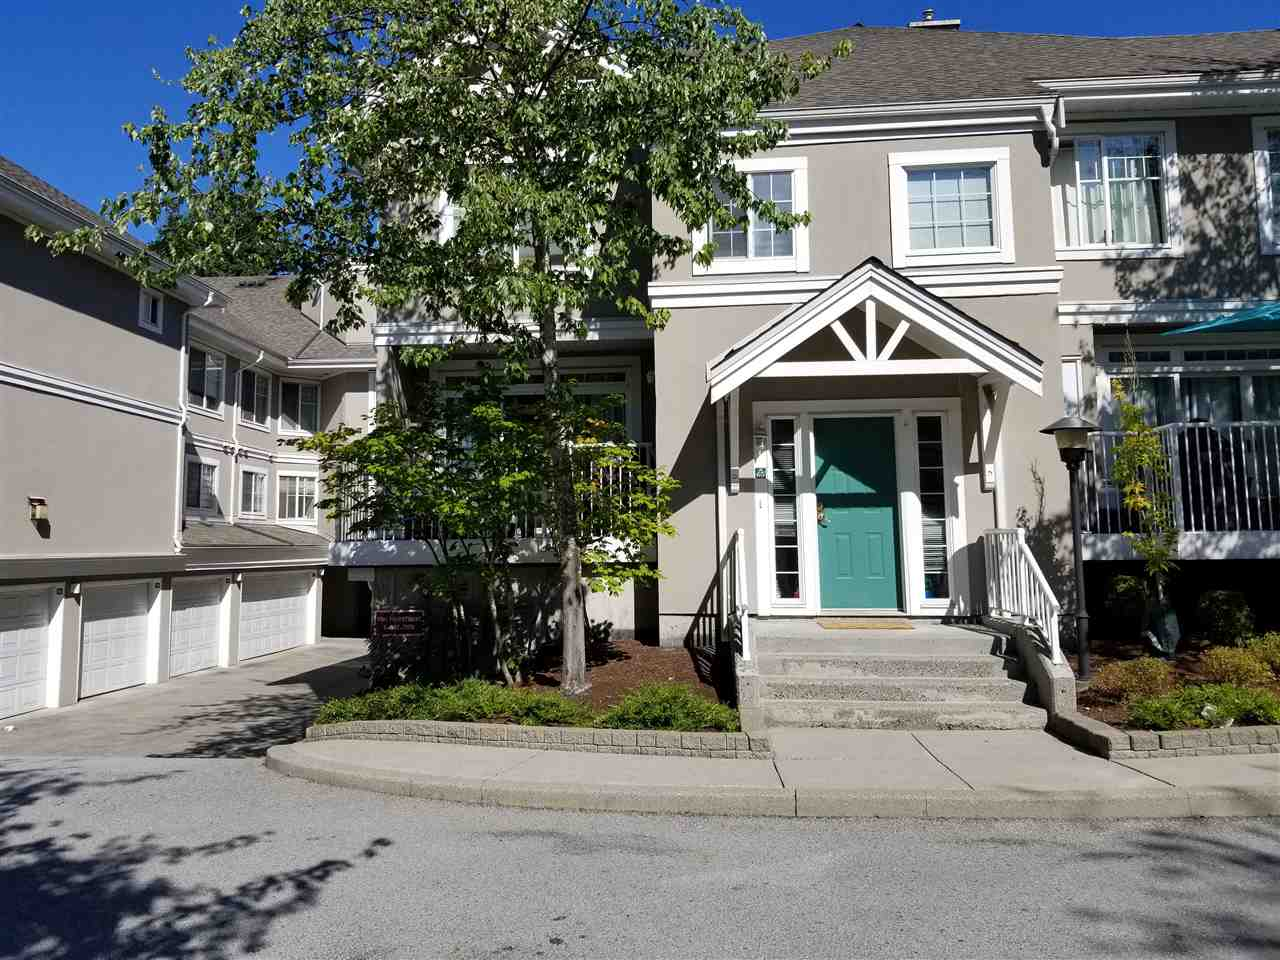 65 2422 HAWTHORNE AVENUE - Central Pt Coquitlam Townhouse for sale, 3 Bedrooms (R2486110) - #1